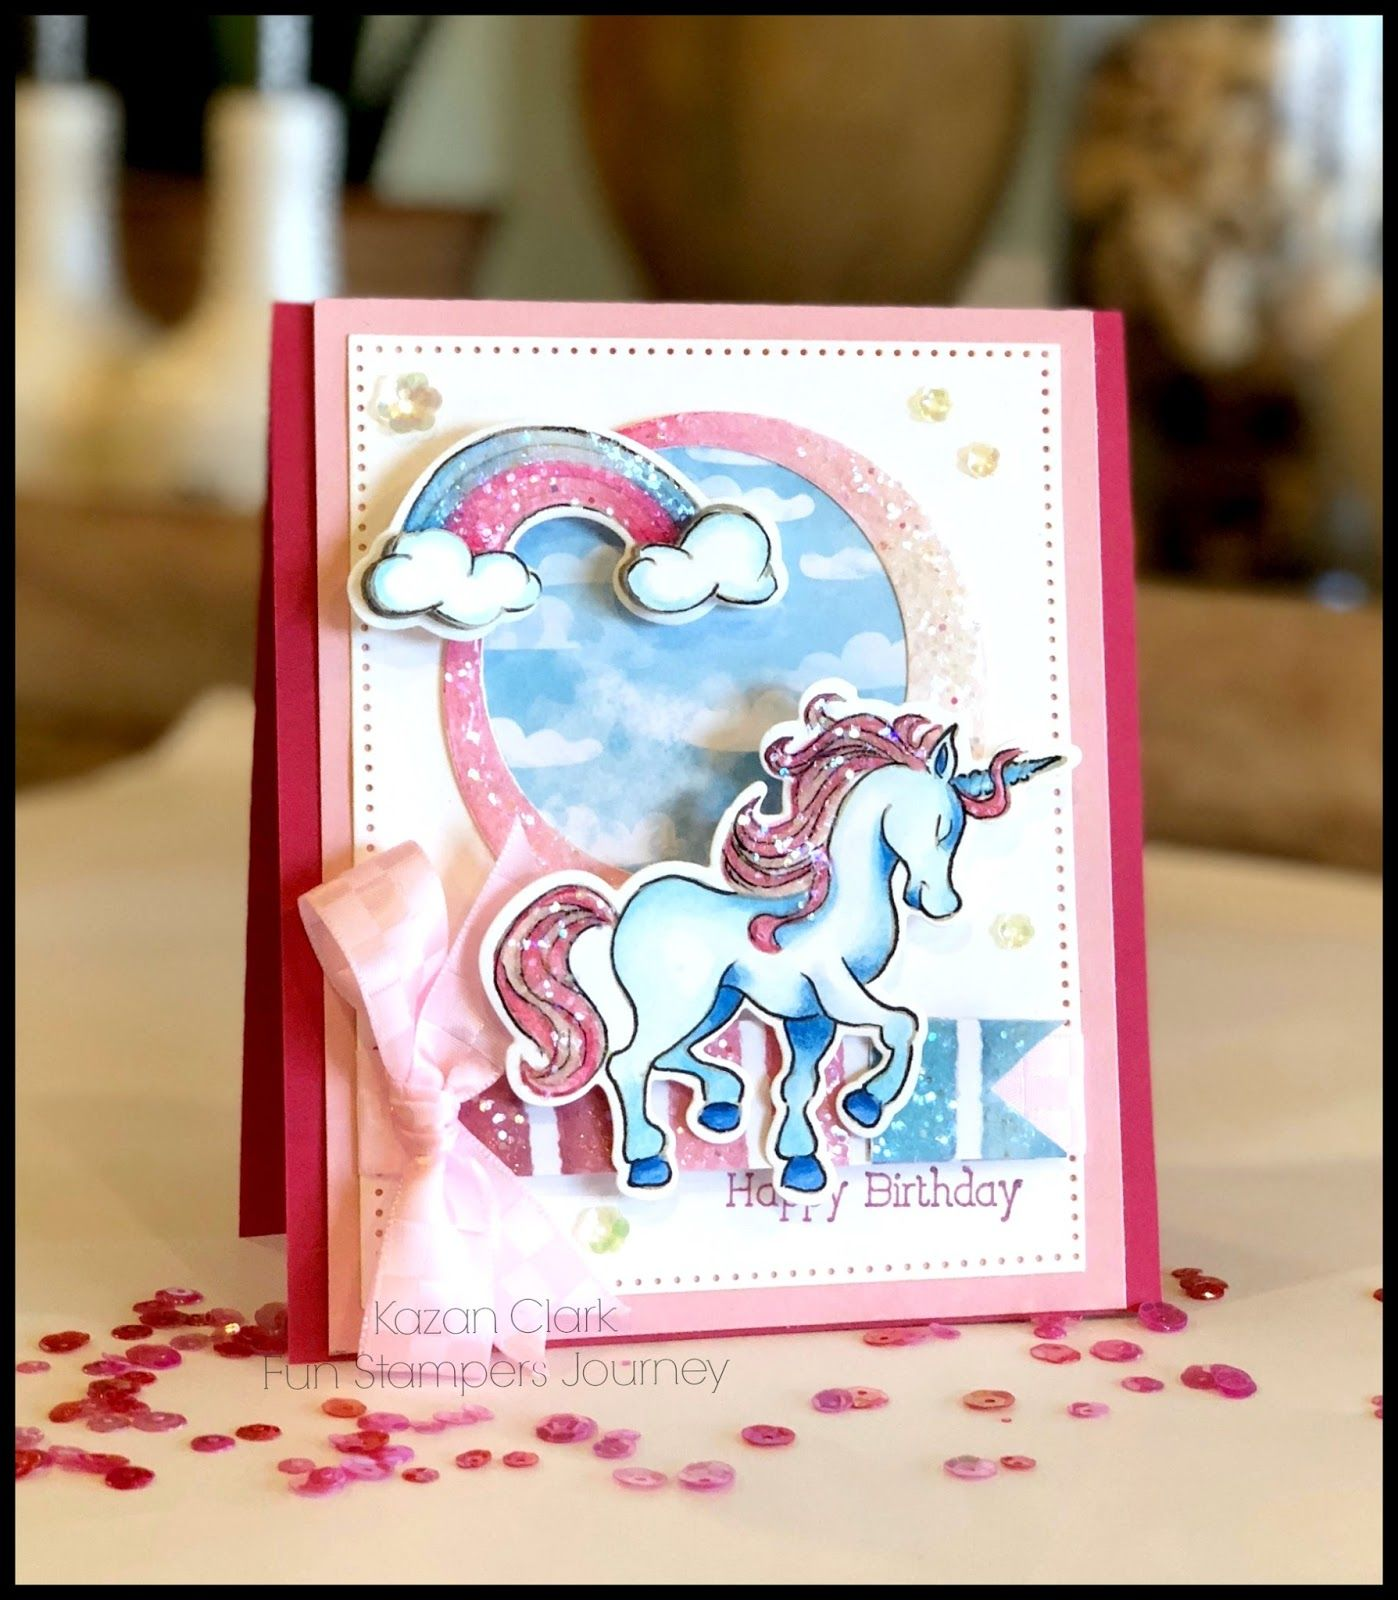 independent fun stampers journey coach 35 fun stampers